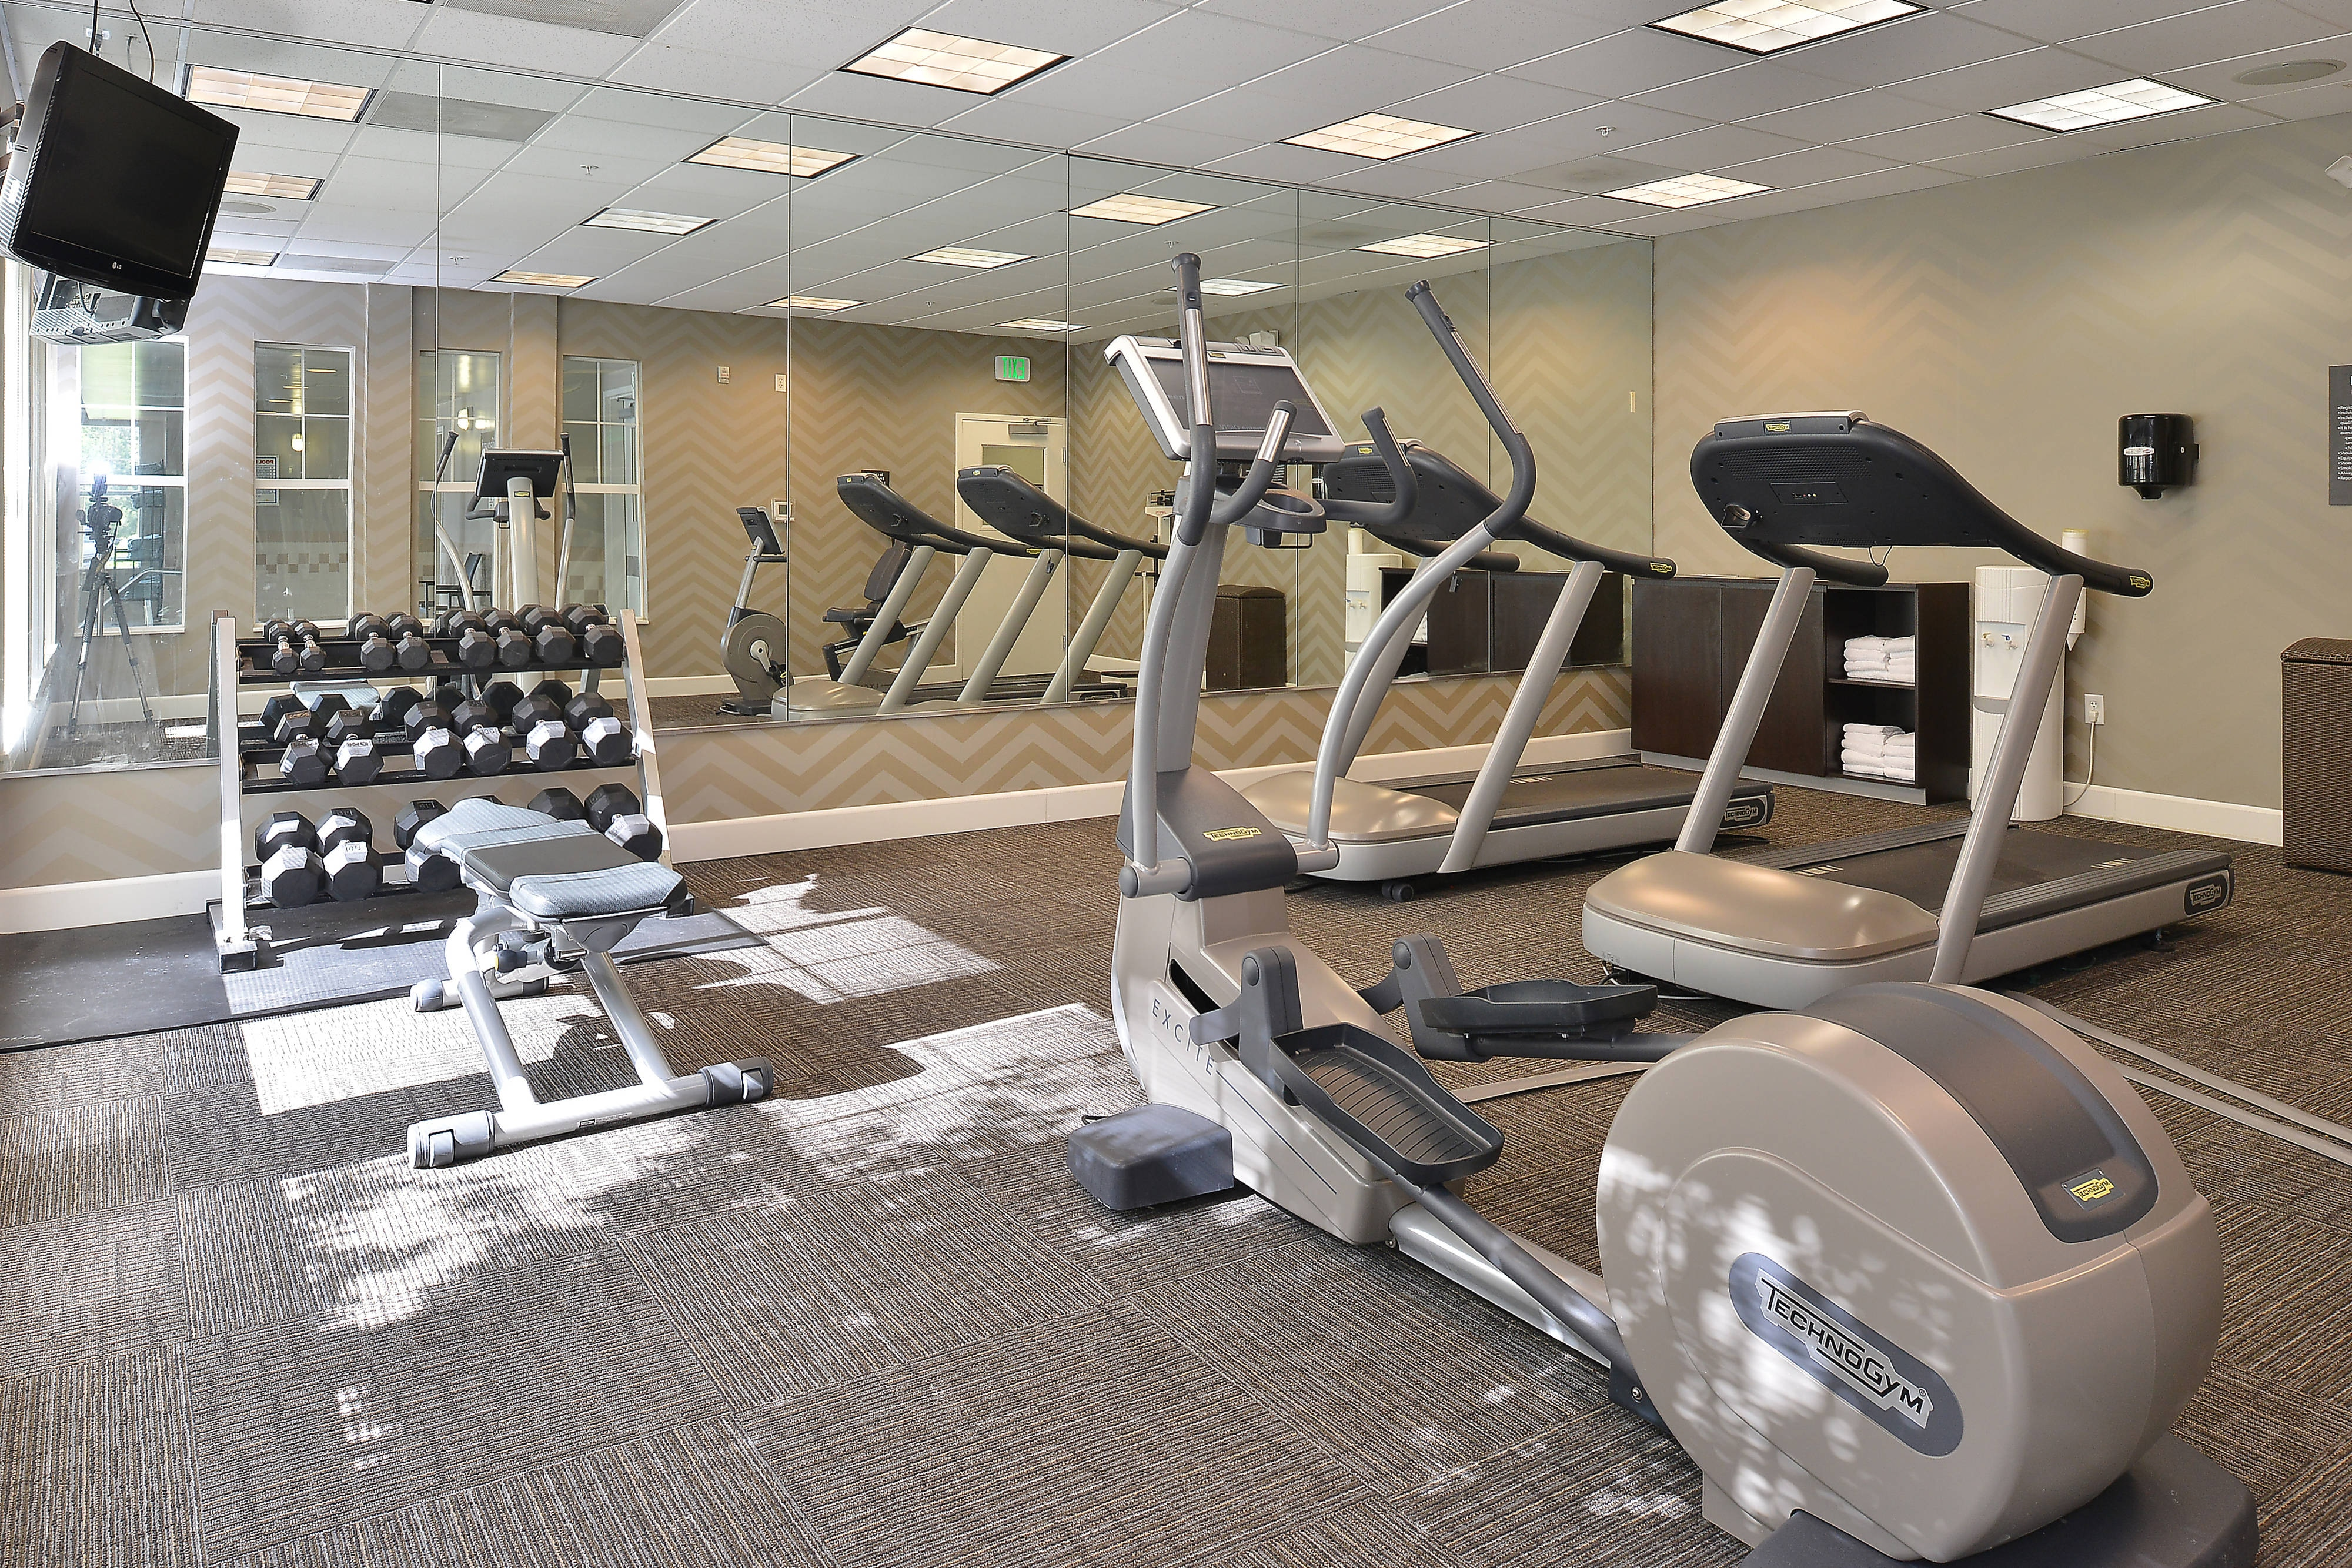 Loveland Fort Collins Hotel Gym